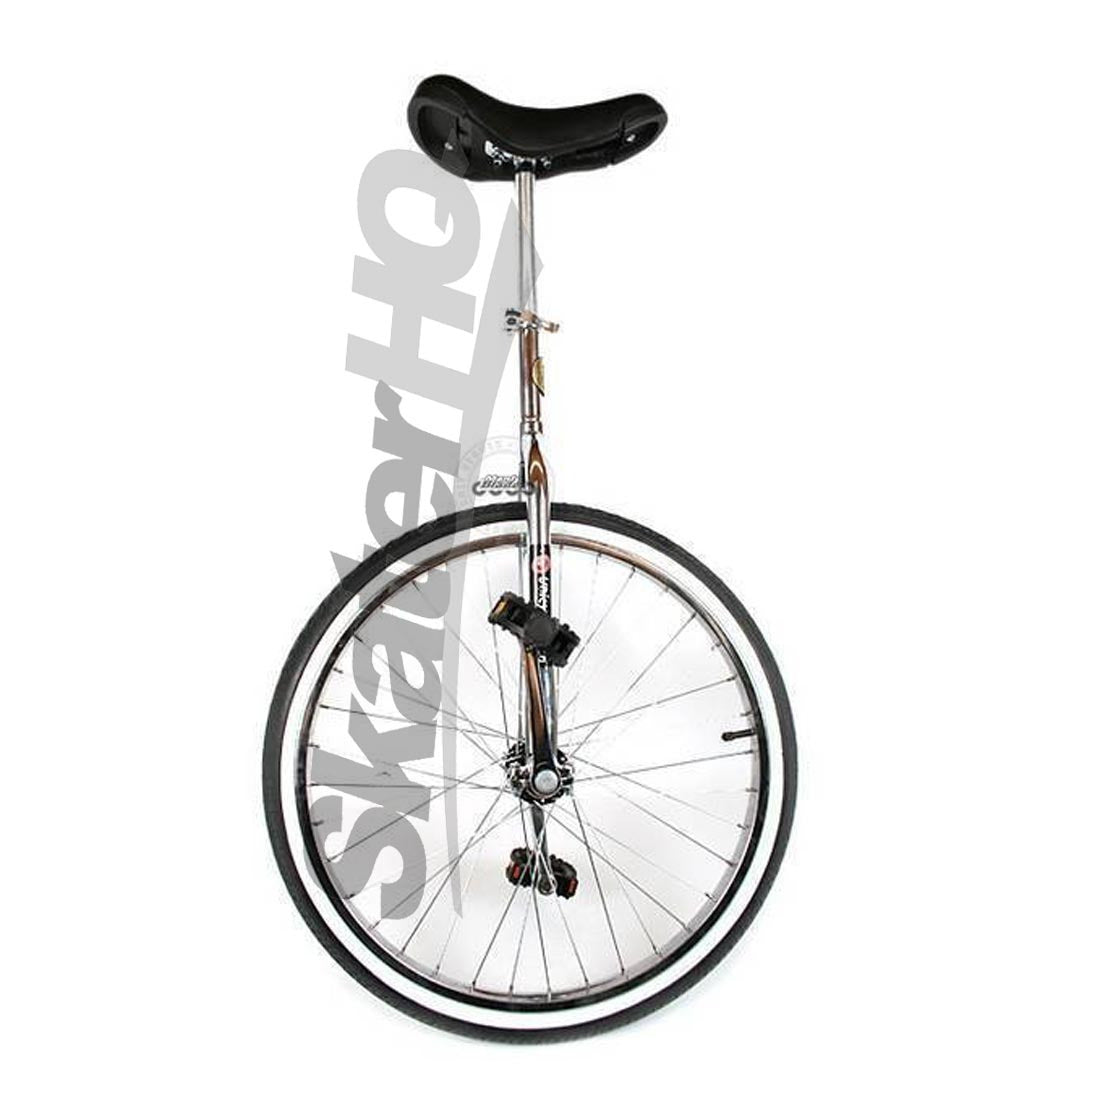 Axis Trainer 24inch Unicycle - Silver